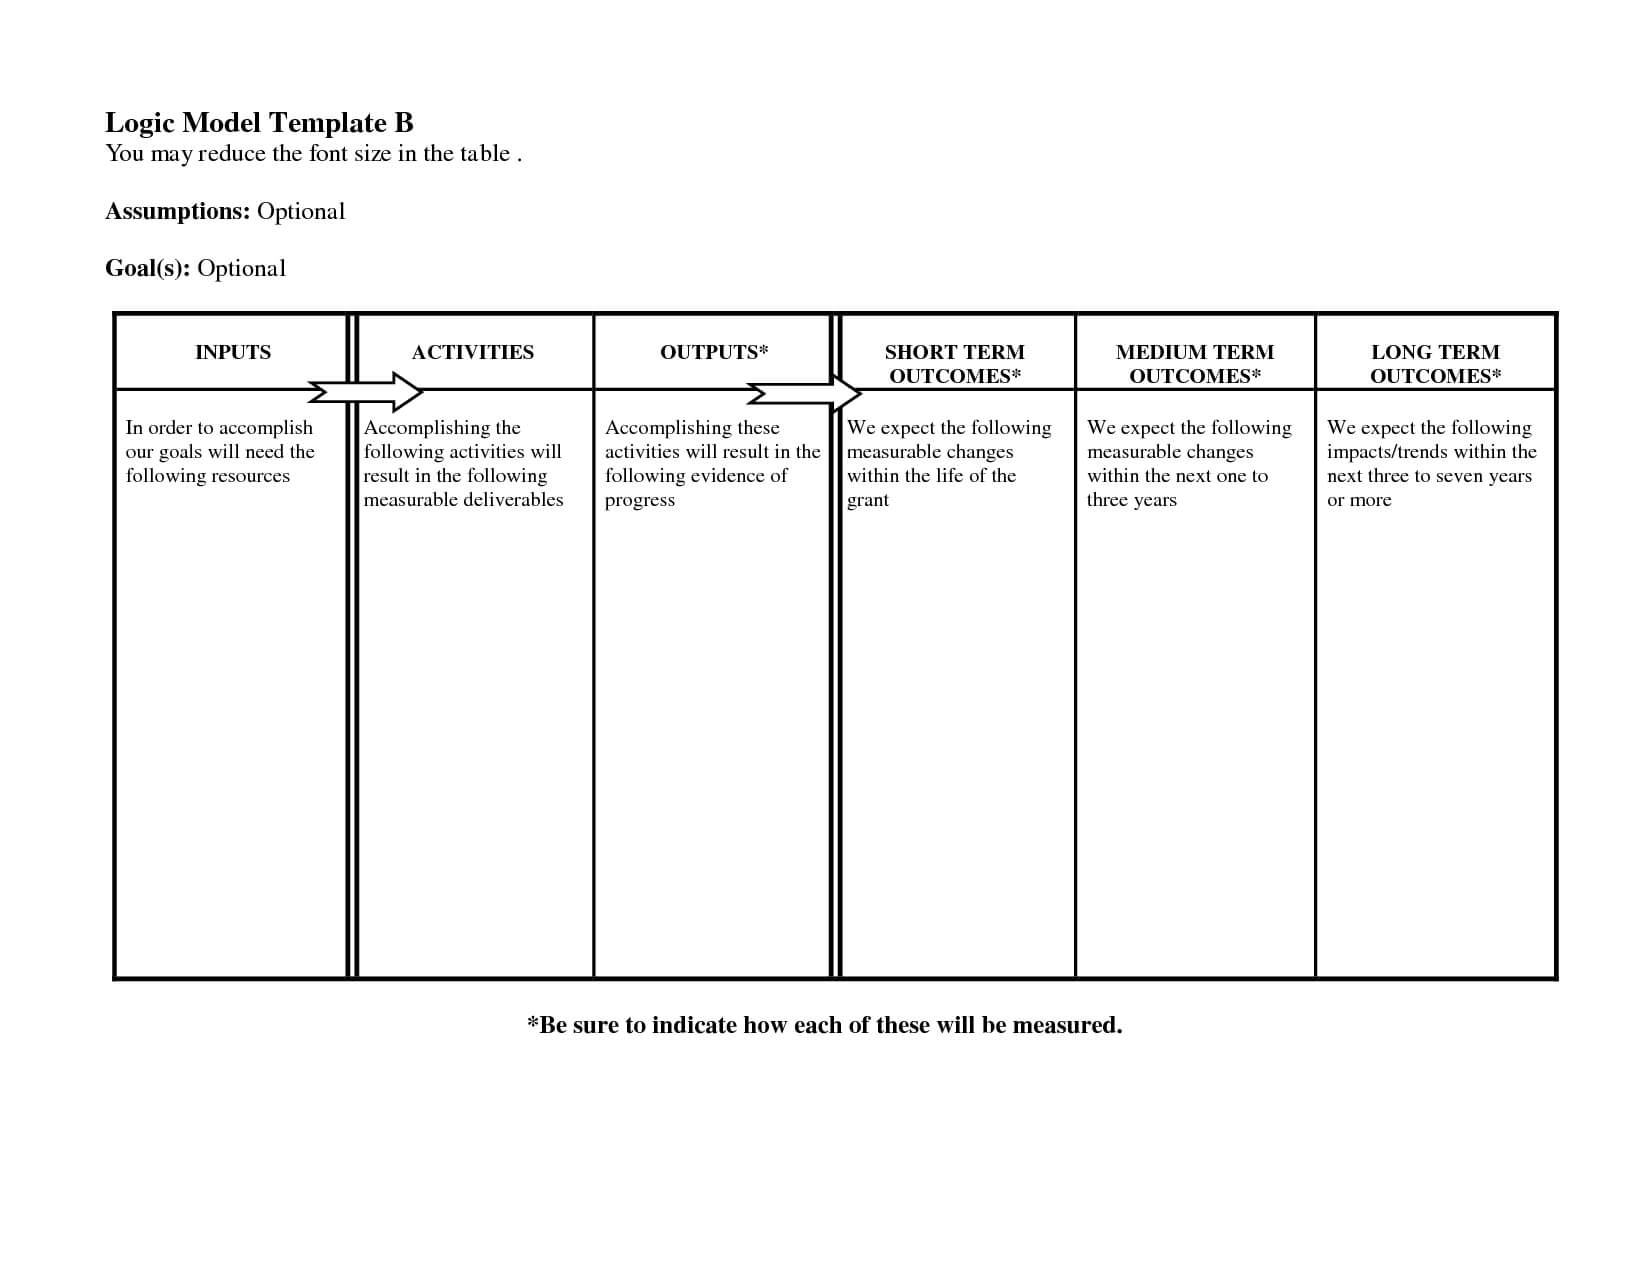 Free Logic Templates Download ] - Of Social Media Marketing Pertaining To Logic Model Template Microsoft Word